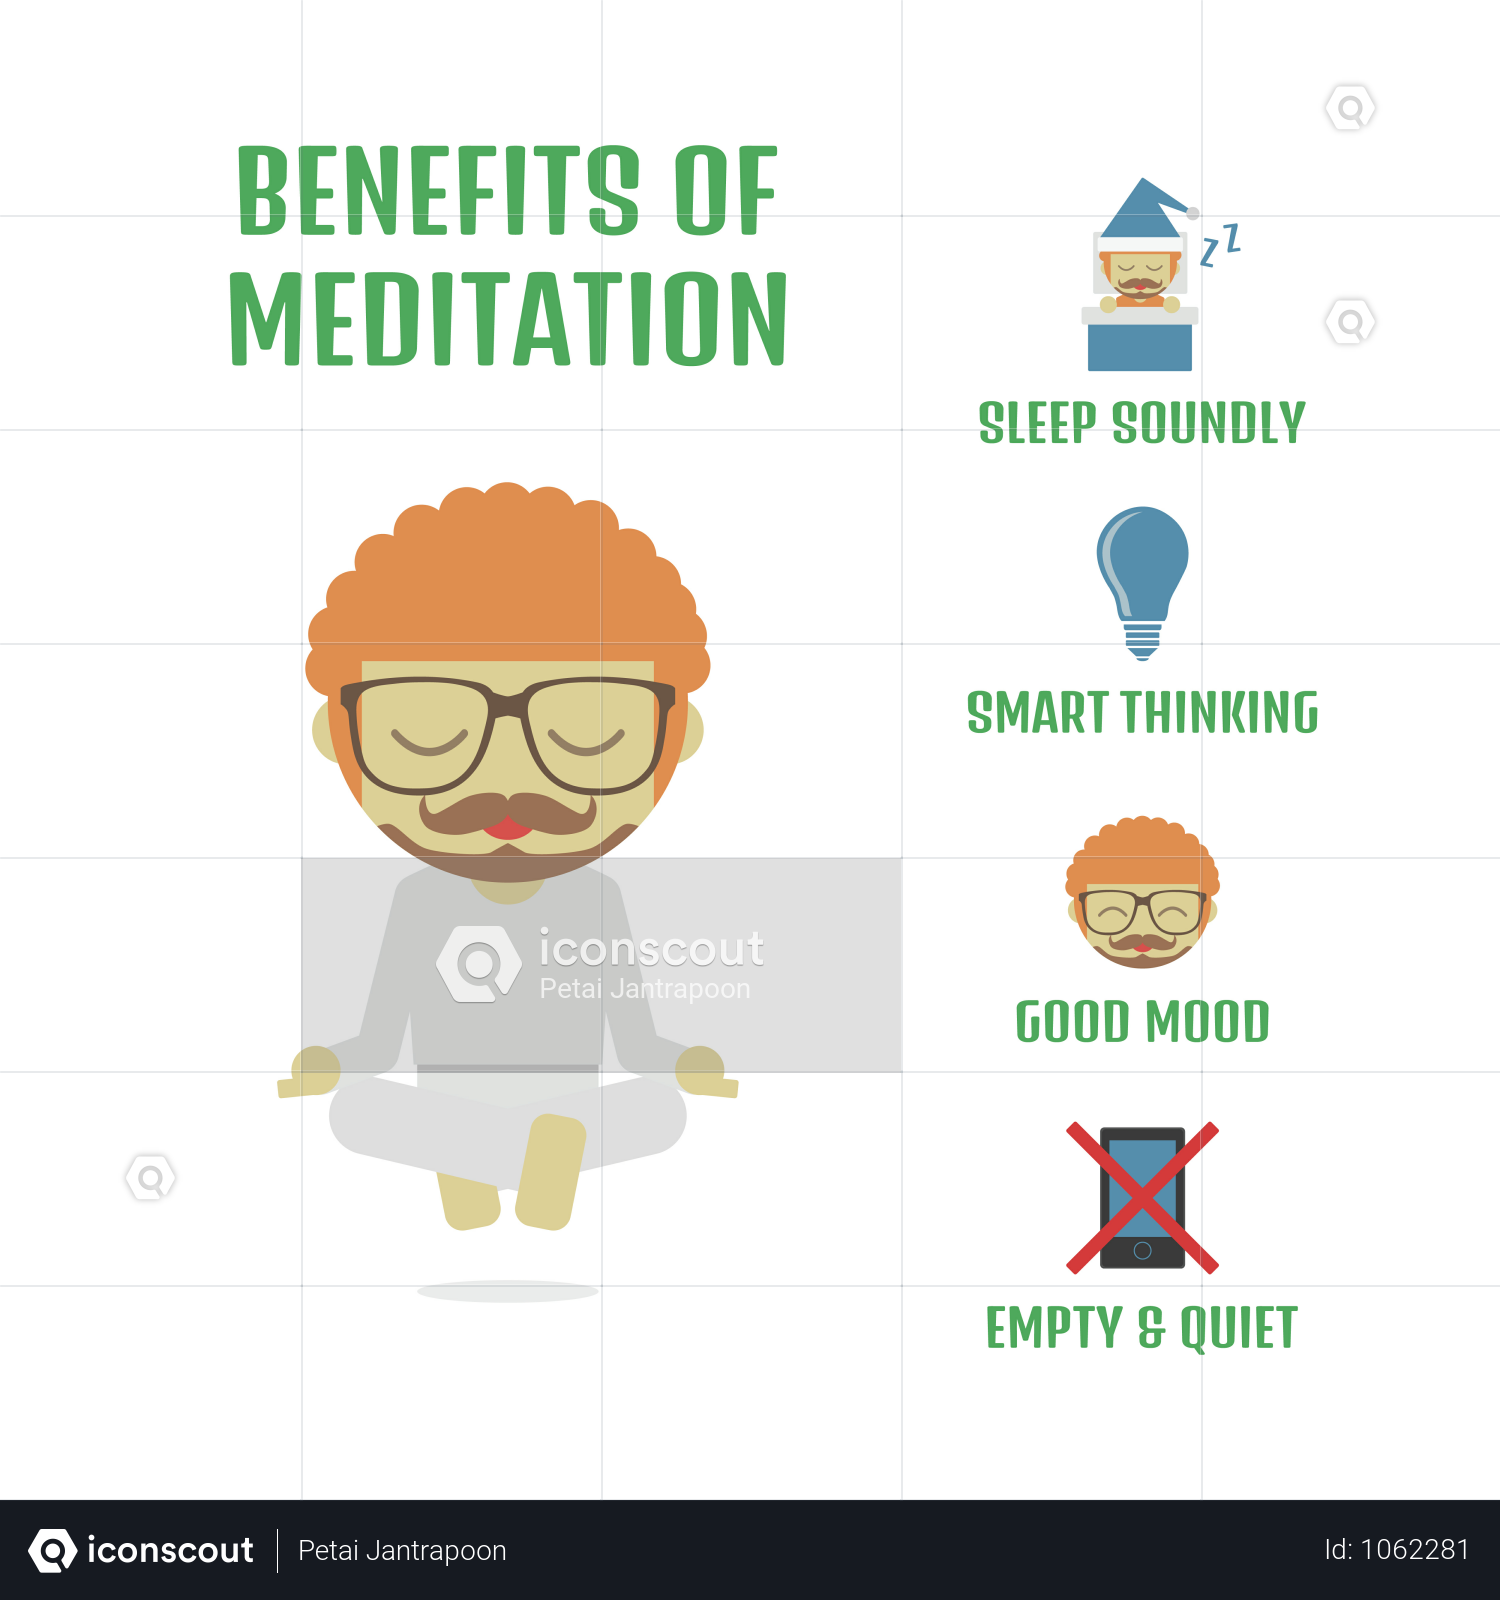 Premium Relax Activitiy The Way Of Zen Isolated On White Background Illustration Download In Png Vector Format Infographic Marketing White Background Illustration